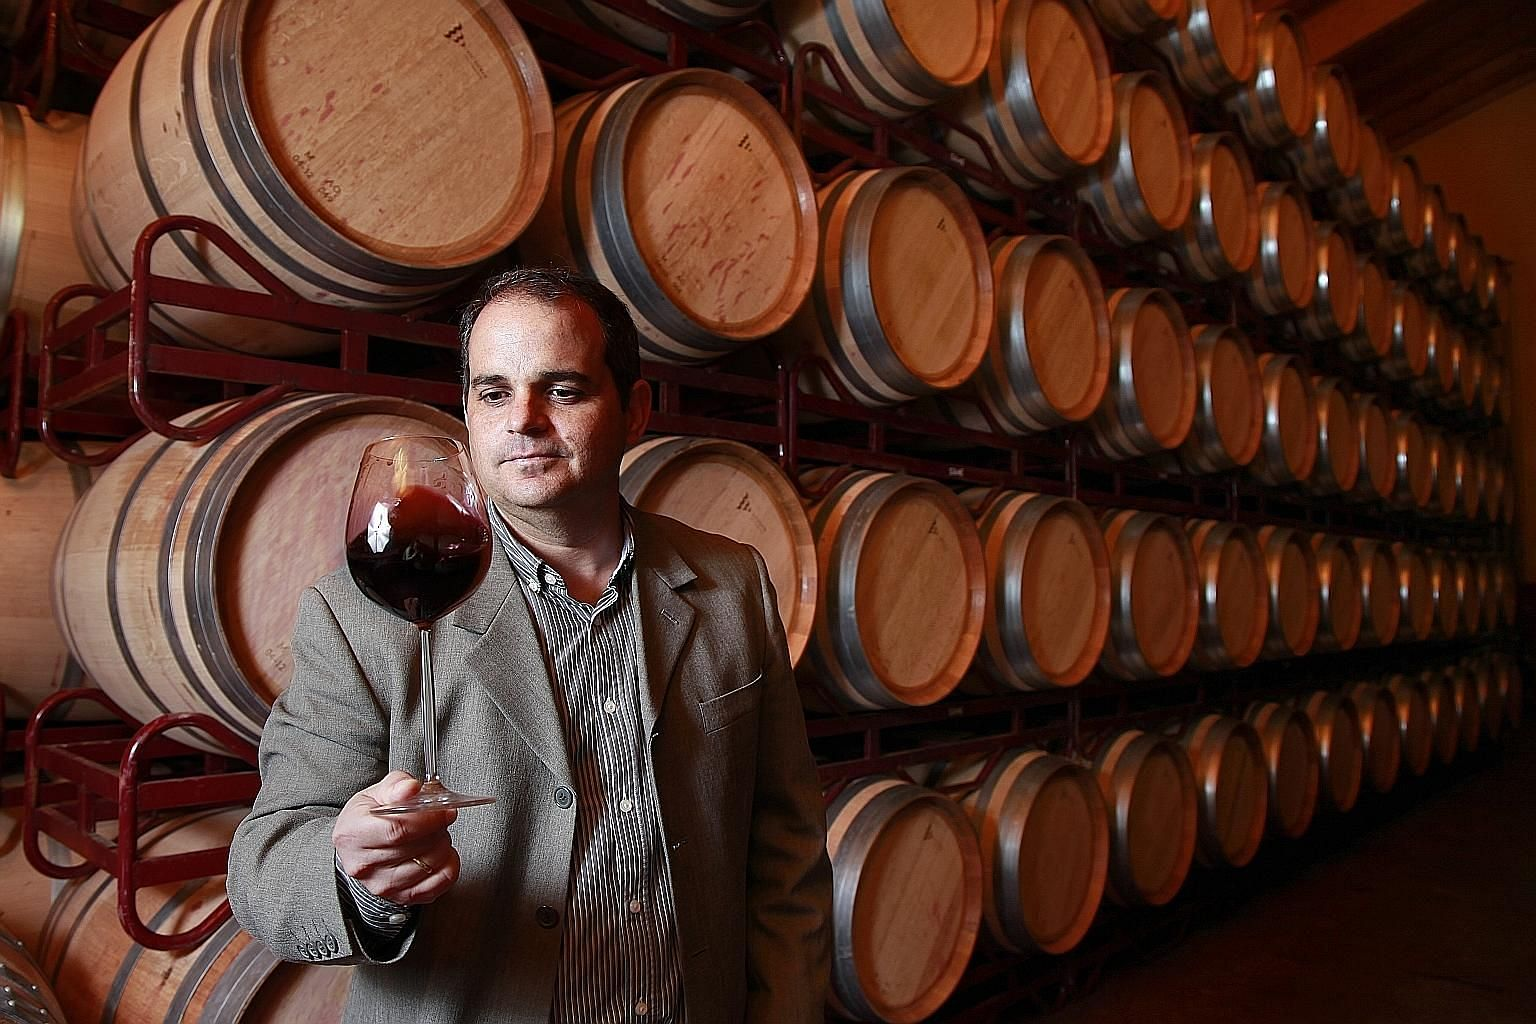 Spanish winemaker Javier Aladro says the wines of Ribera del Duero are powerful, elegant and complex.